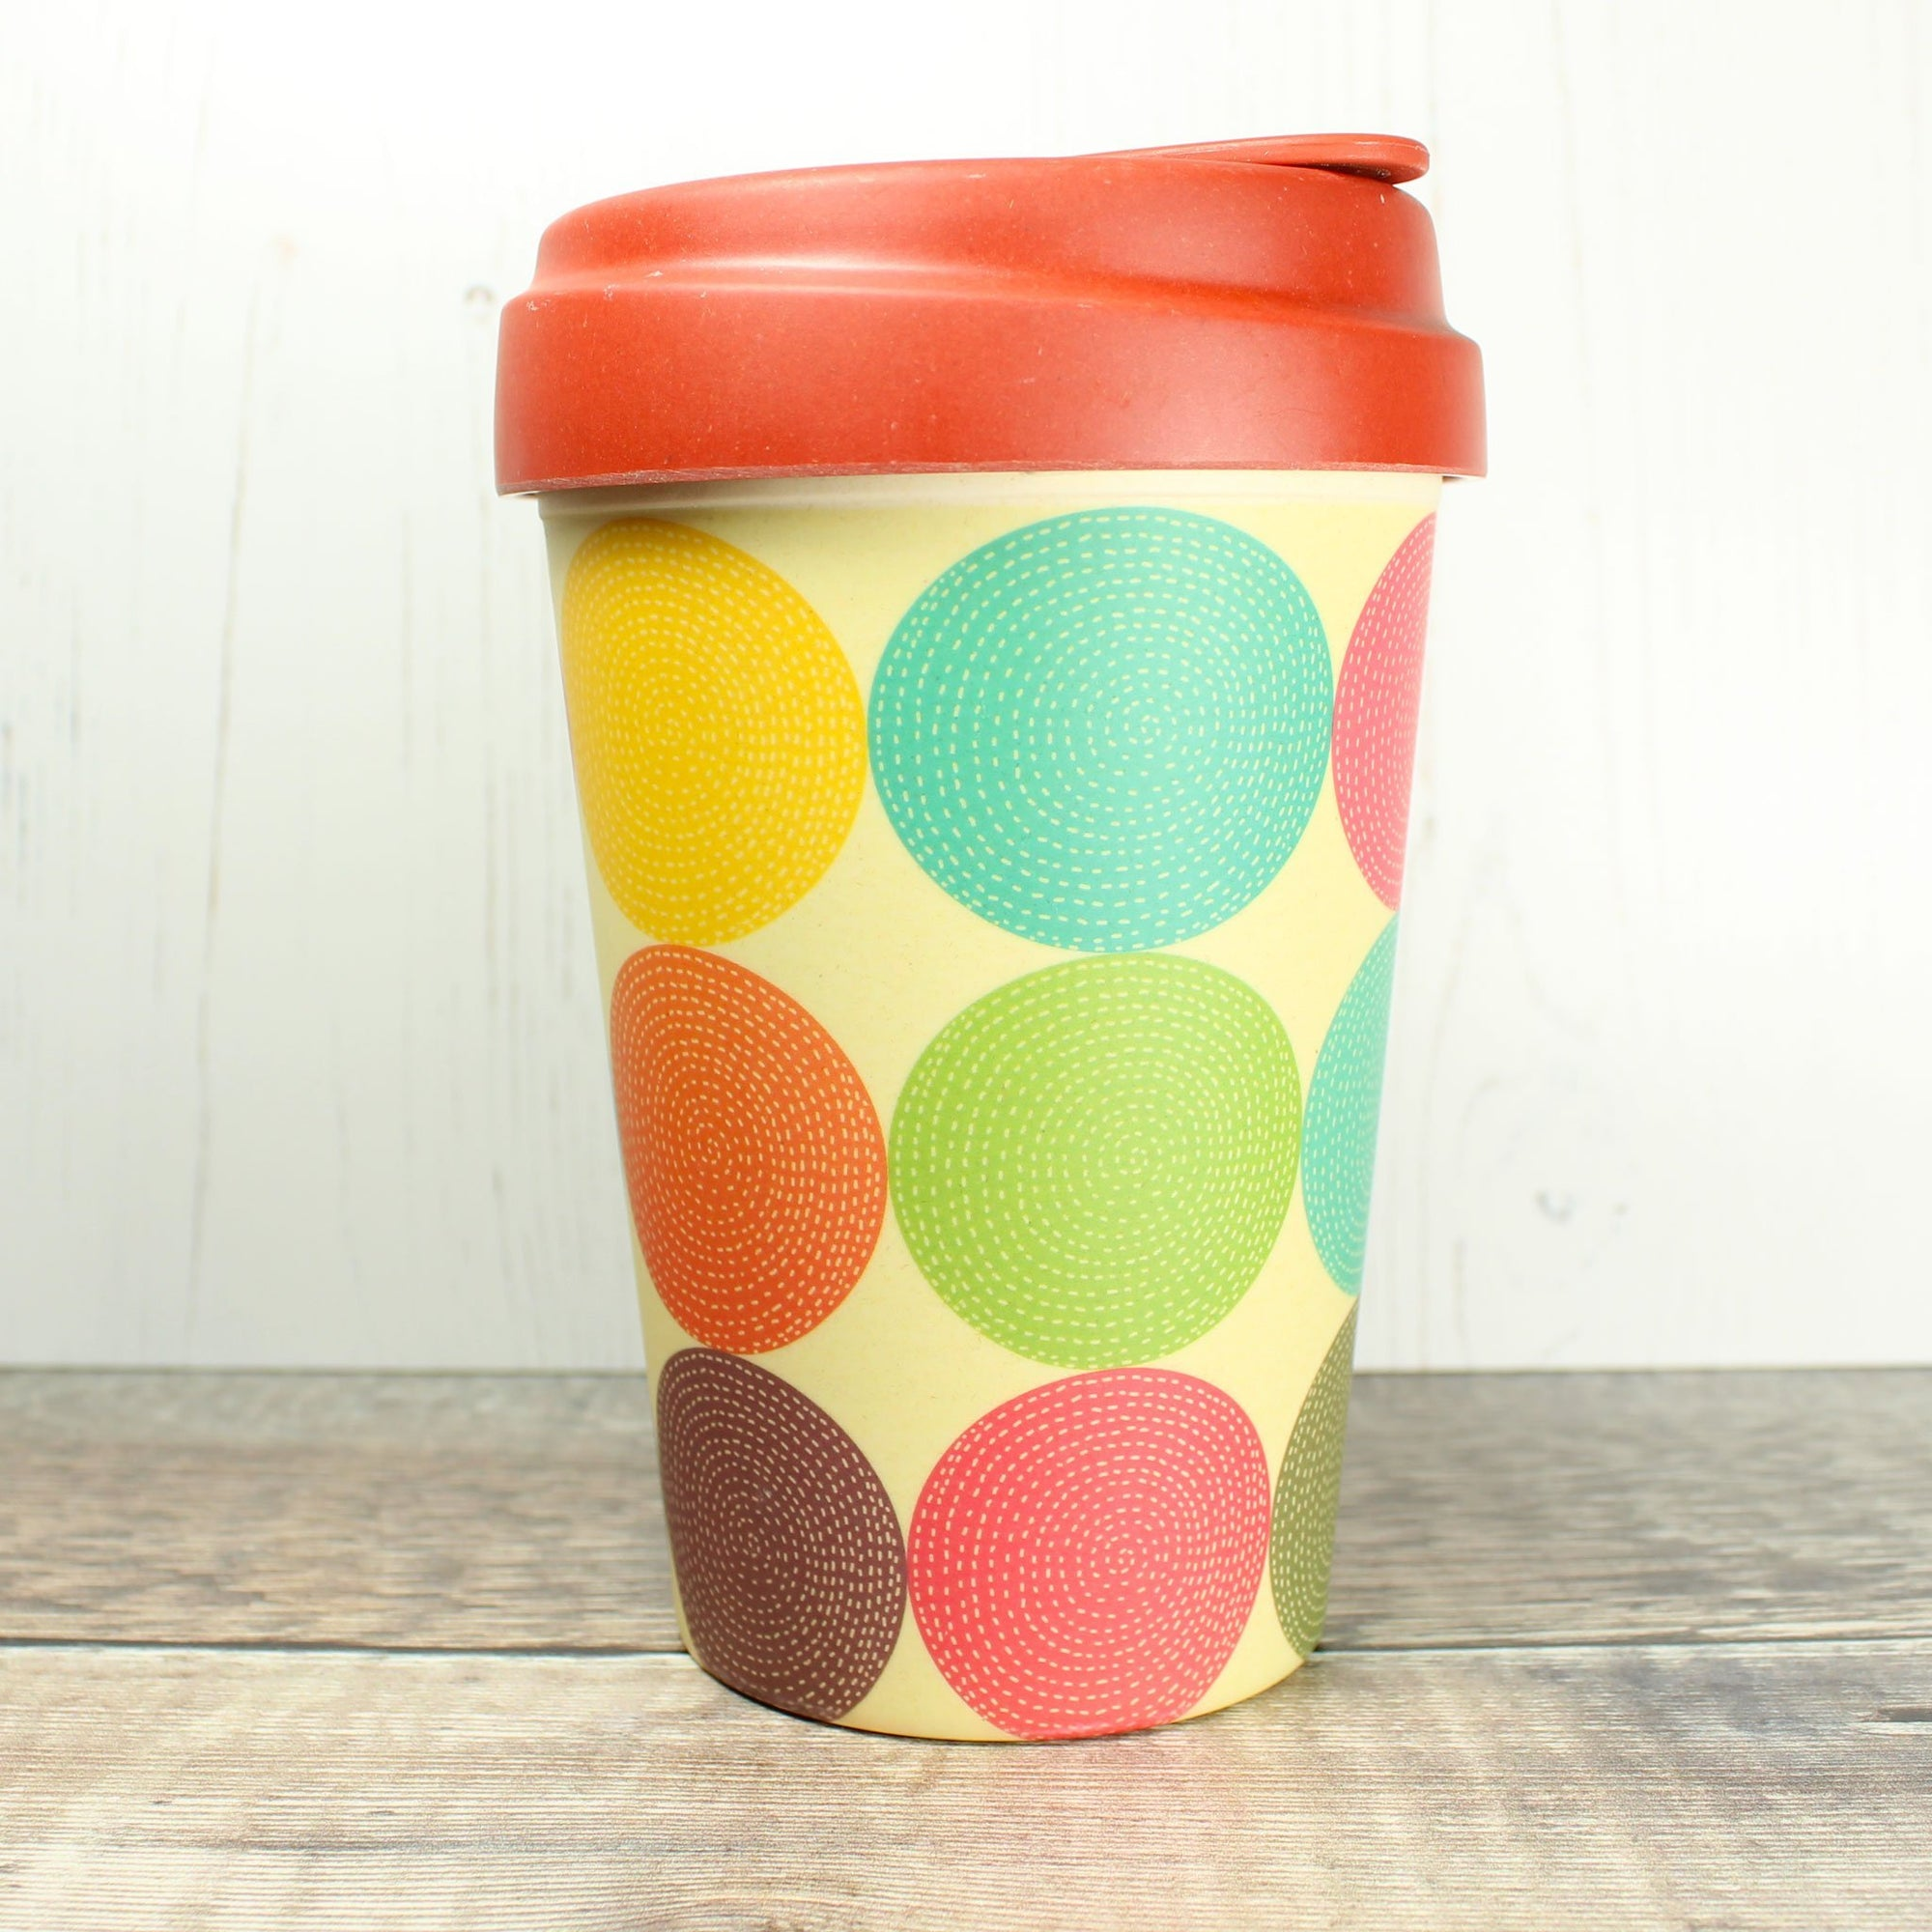 Bamboo Cup - Bright Circles | Bamboo Cup - The Naughty Shrew